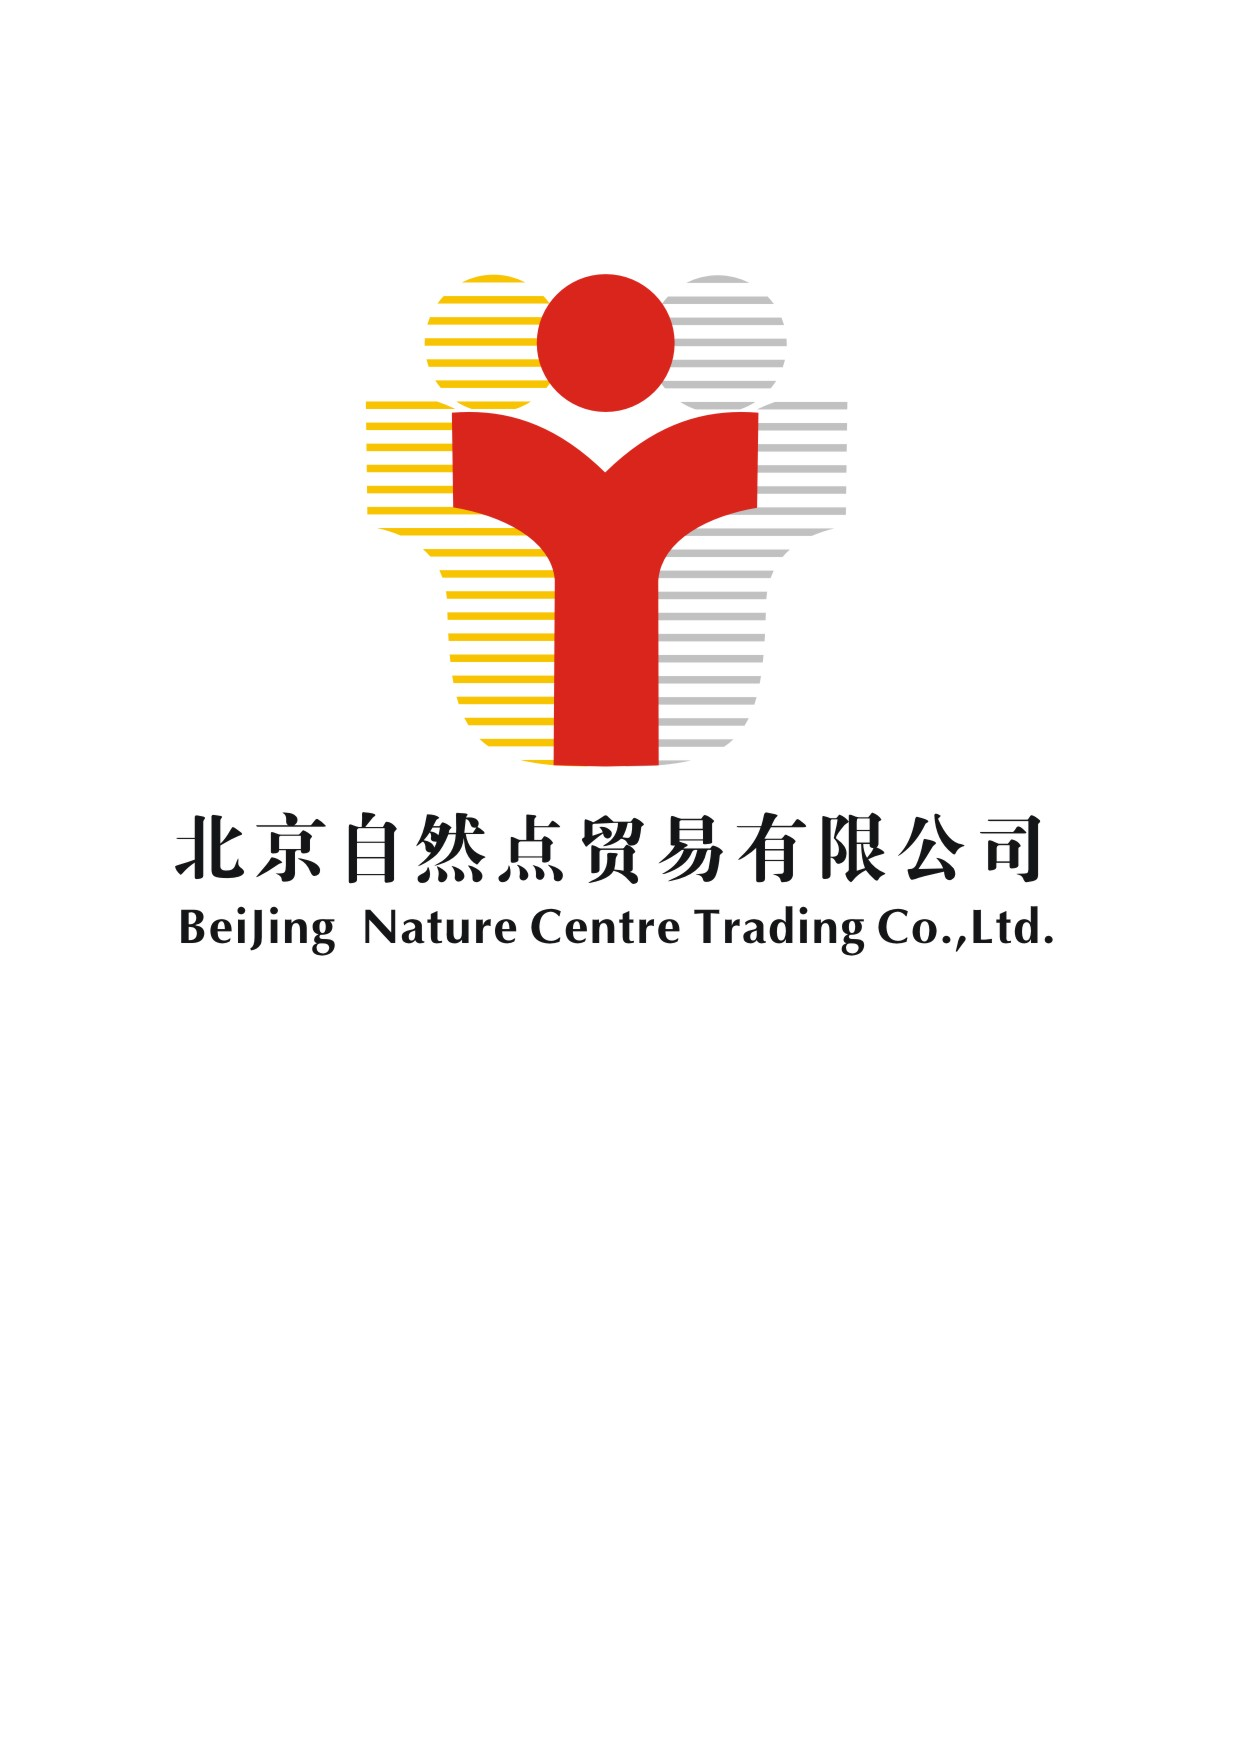 Beijing Nature Center Trading Co.,Ltd logo